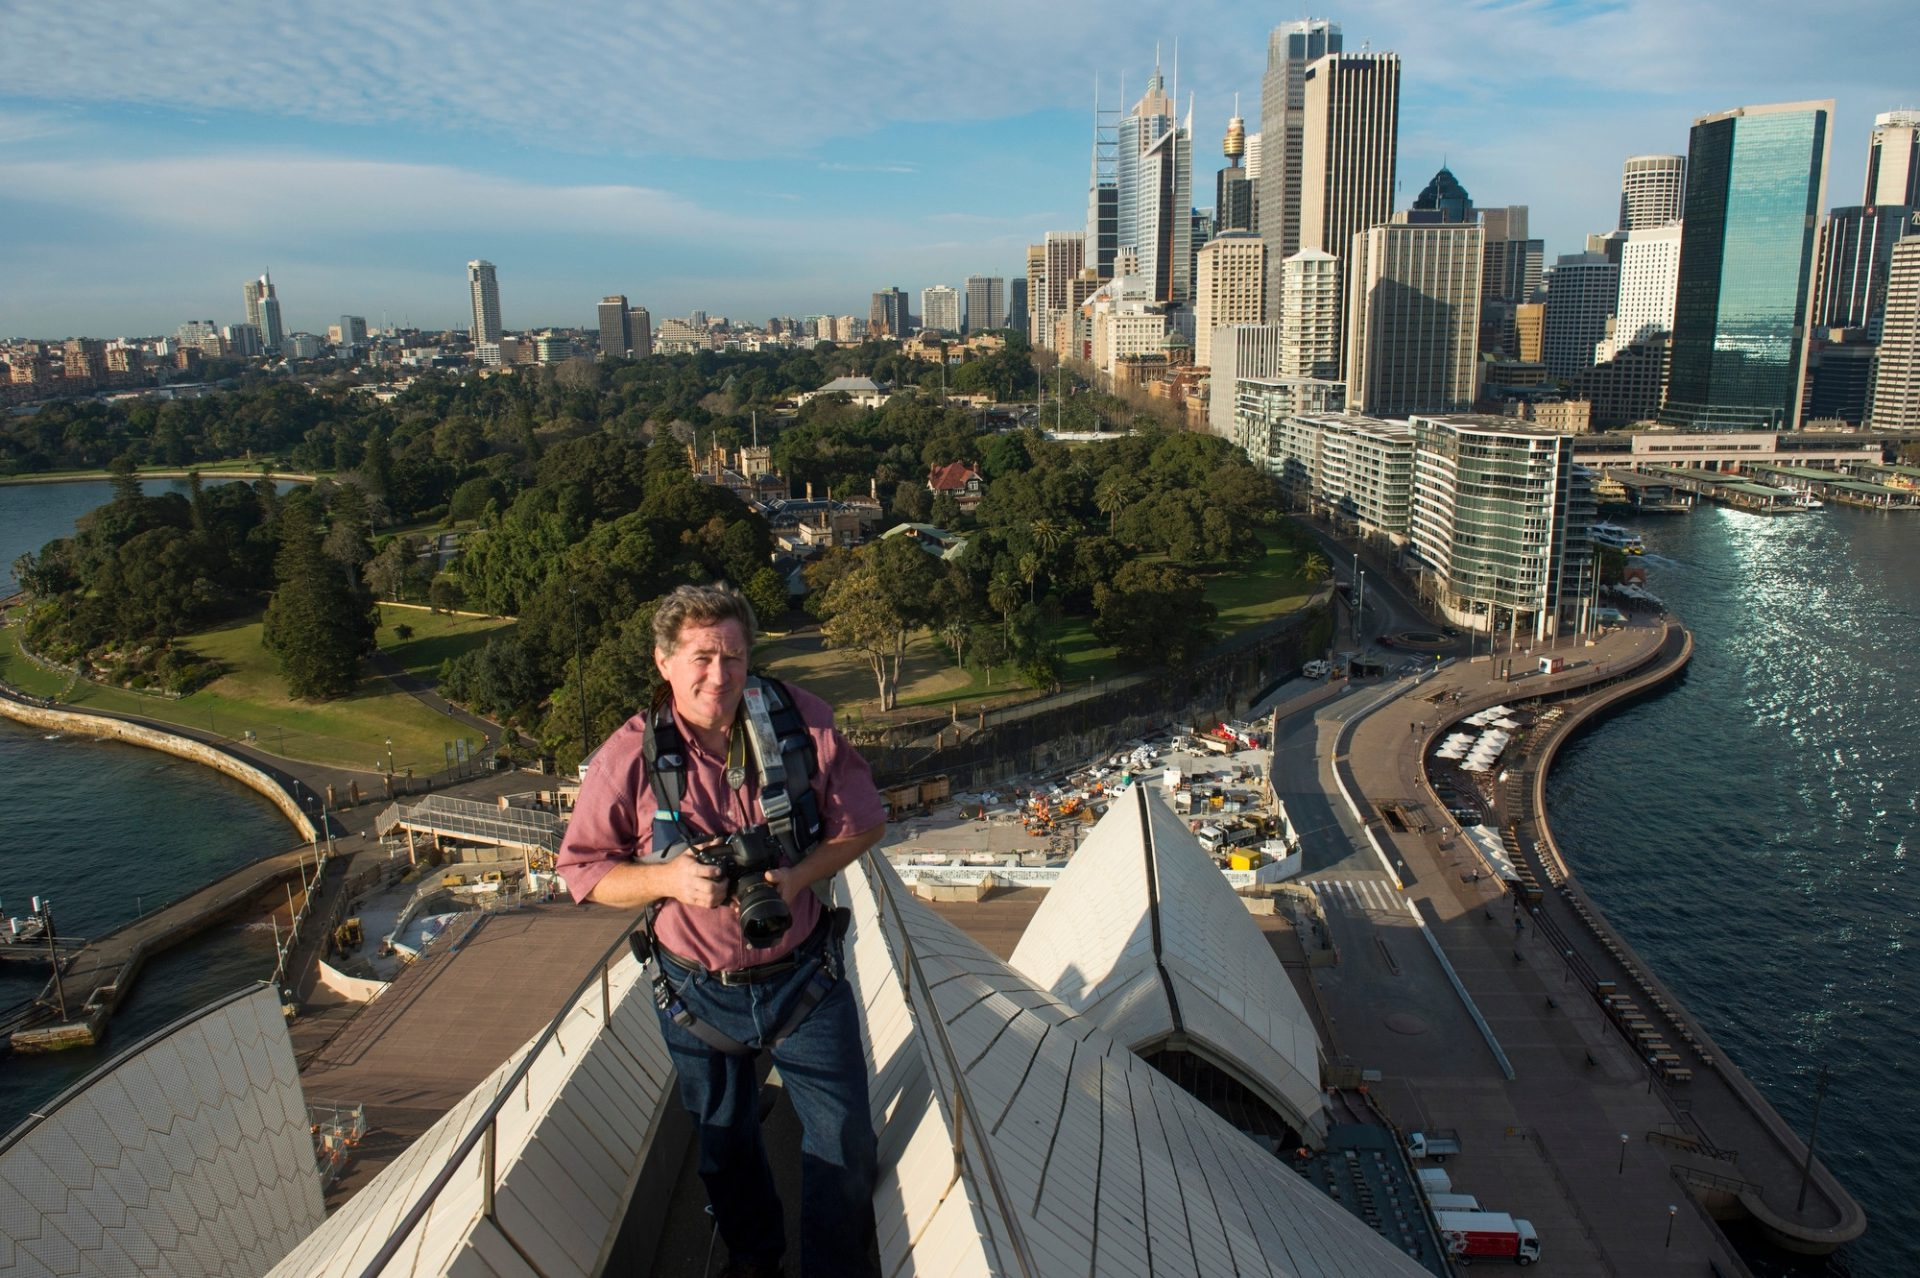 Photo: Joel Sartore at the top of the Sydney Opera House, Australia.